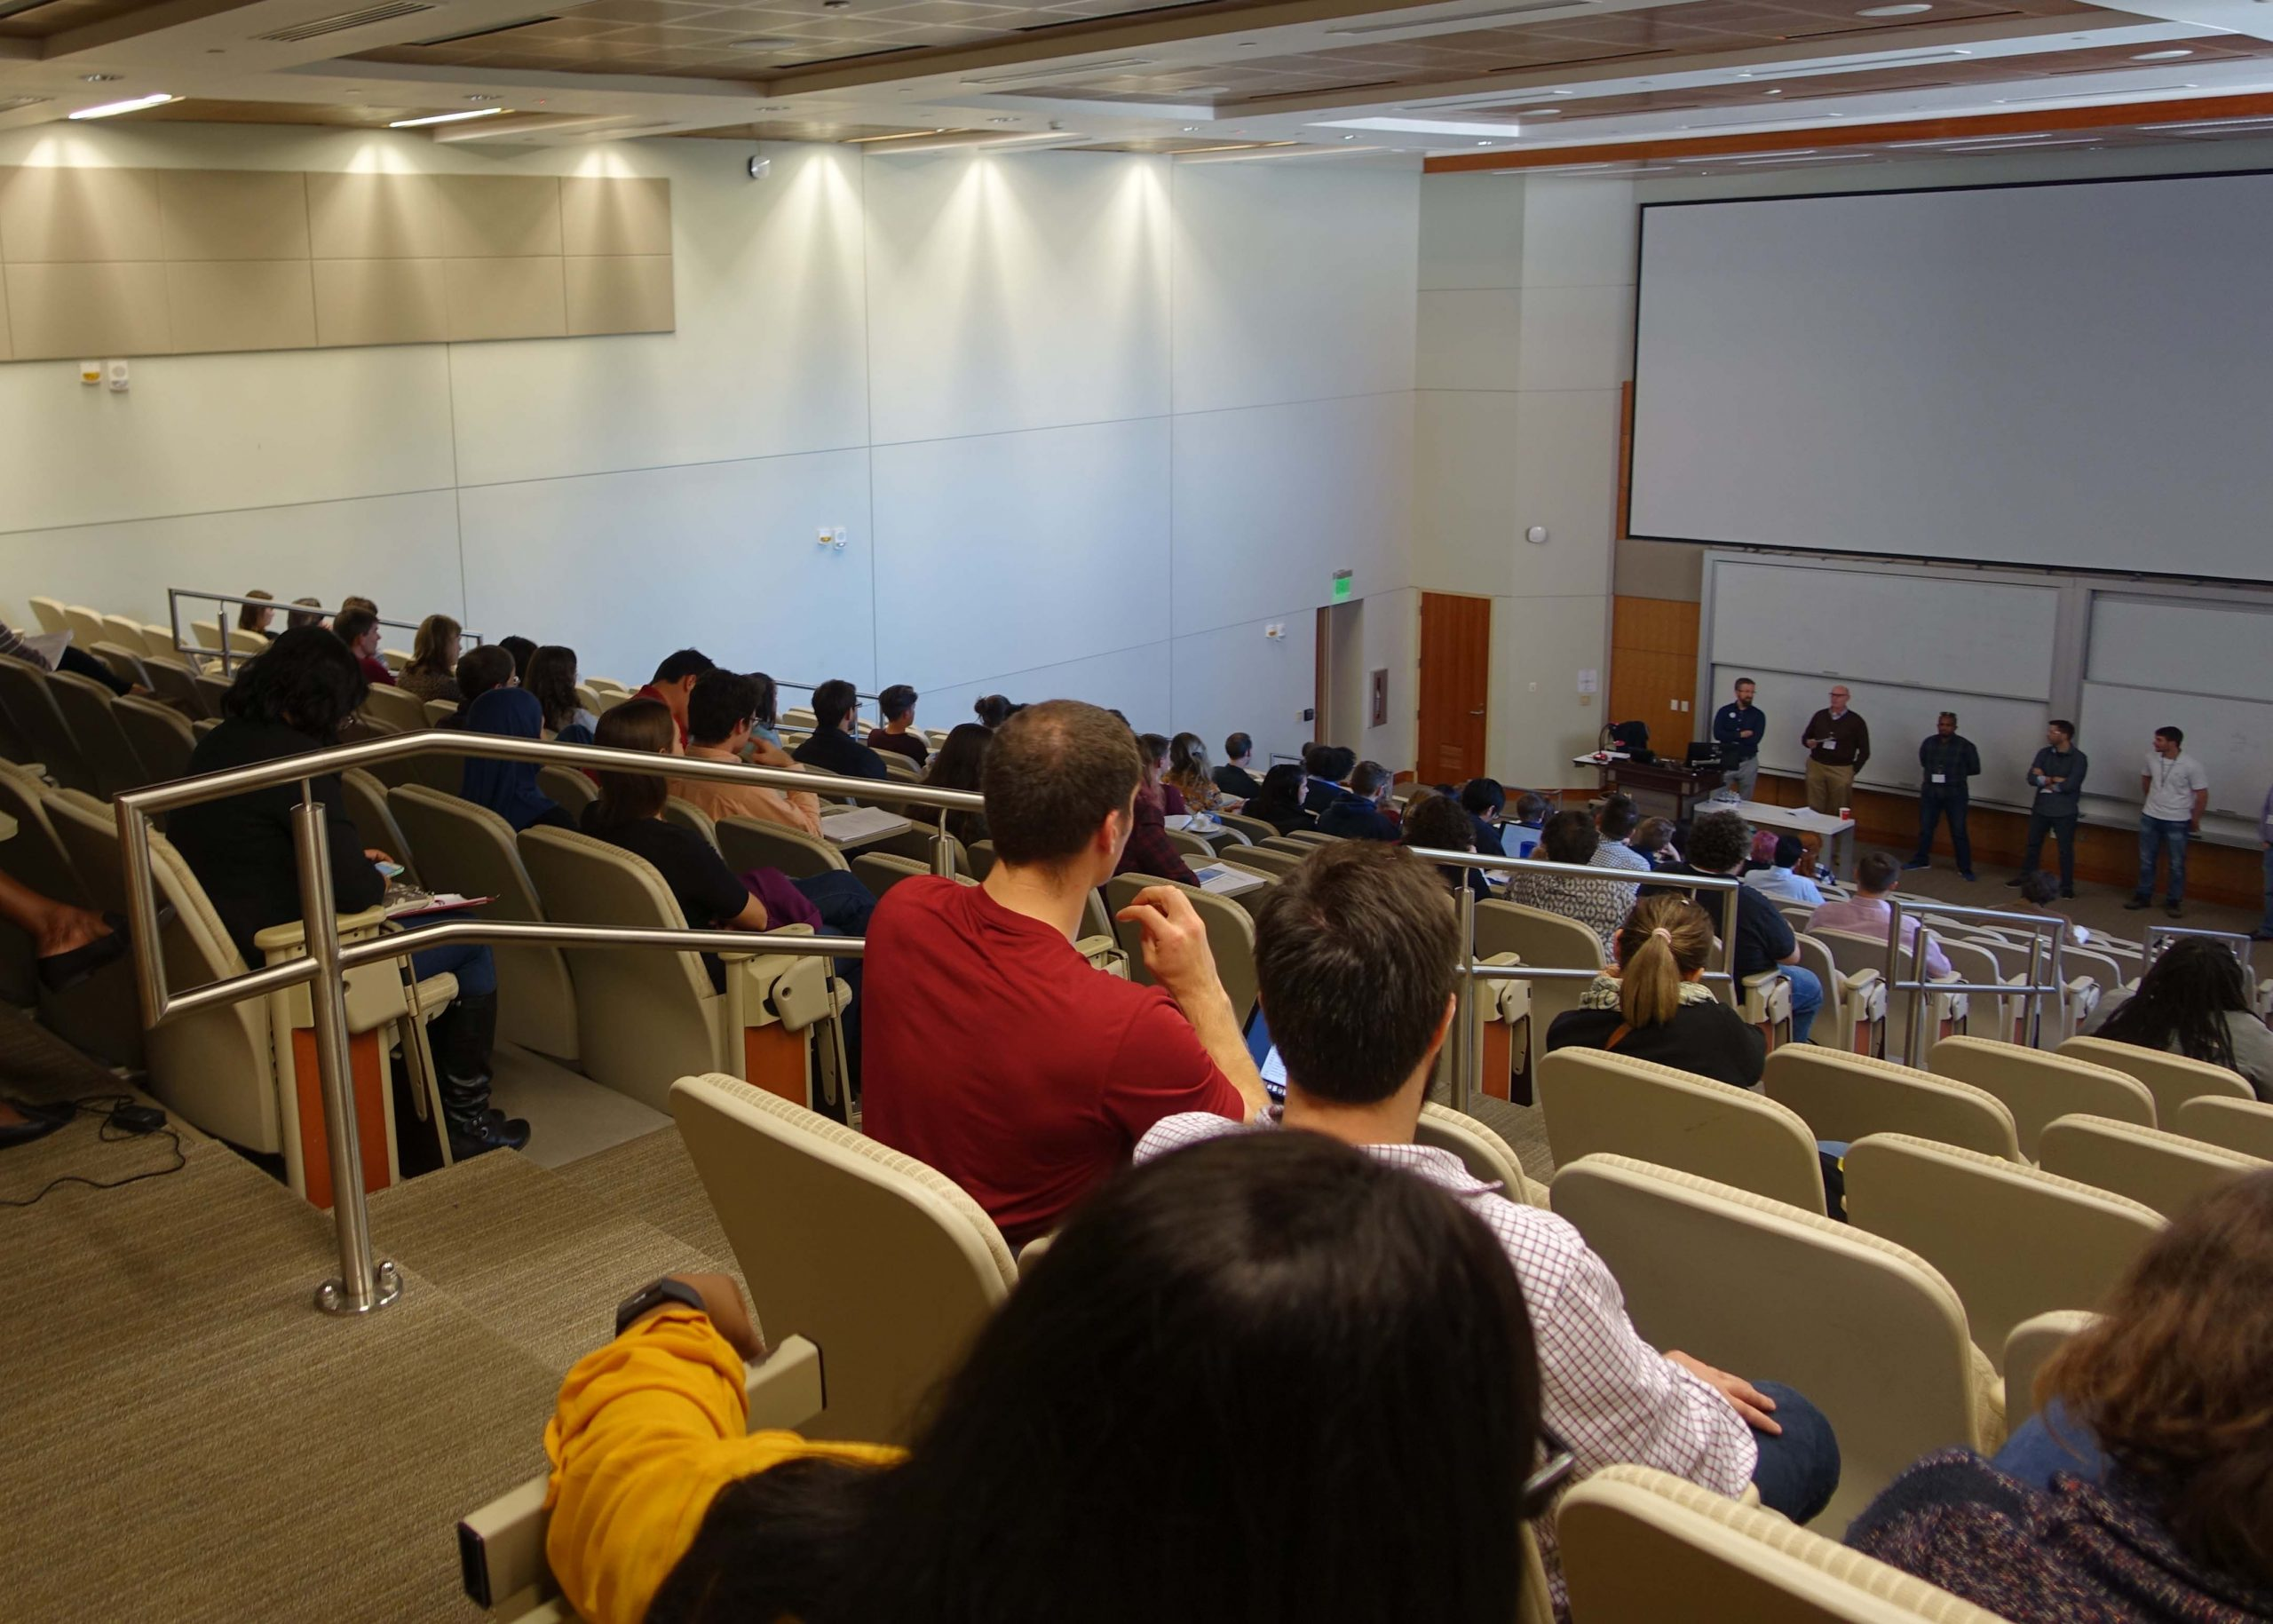 Conference attendees in auditorium